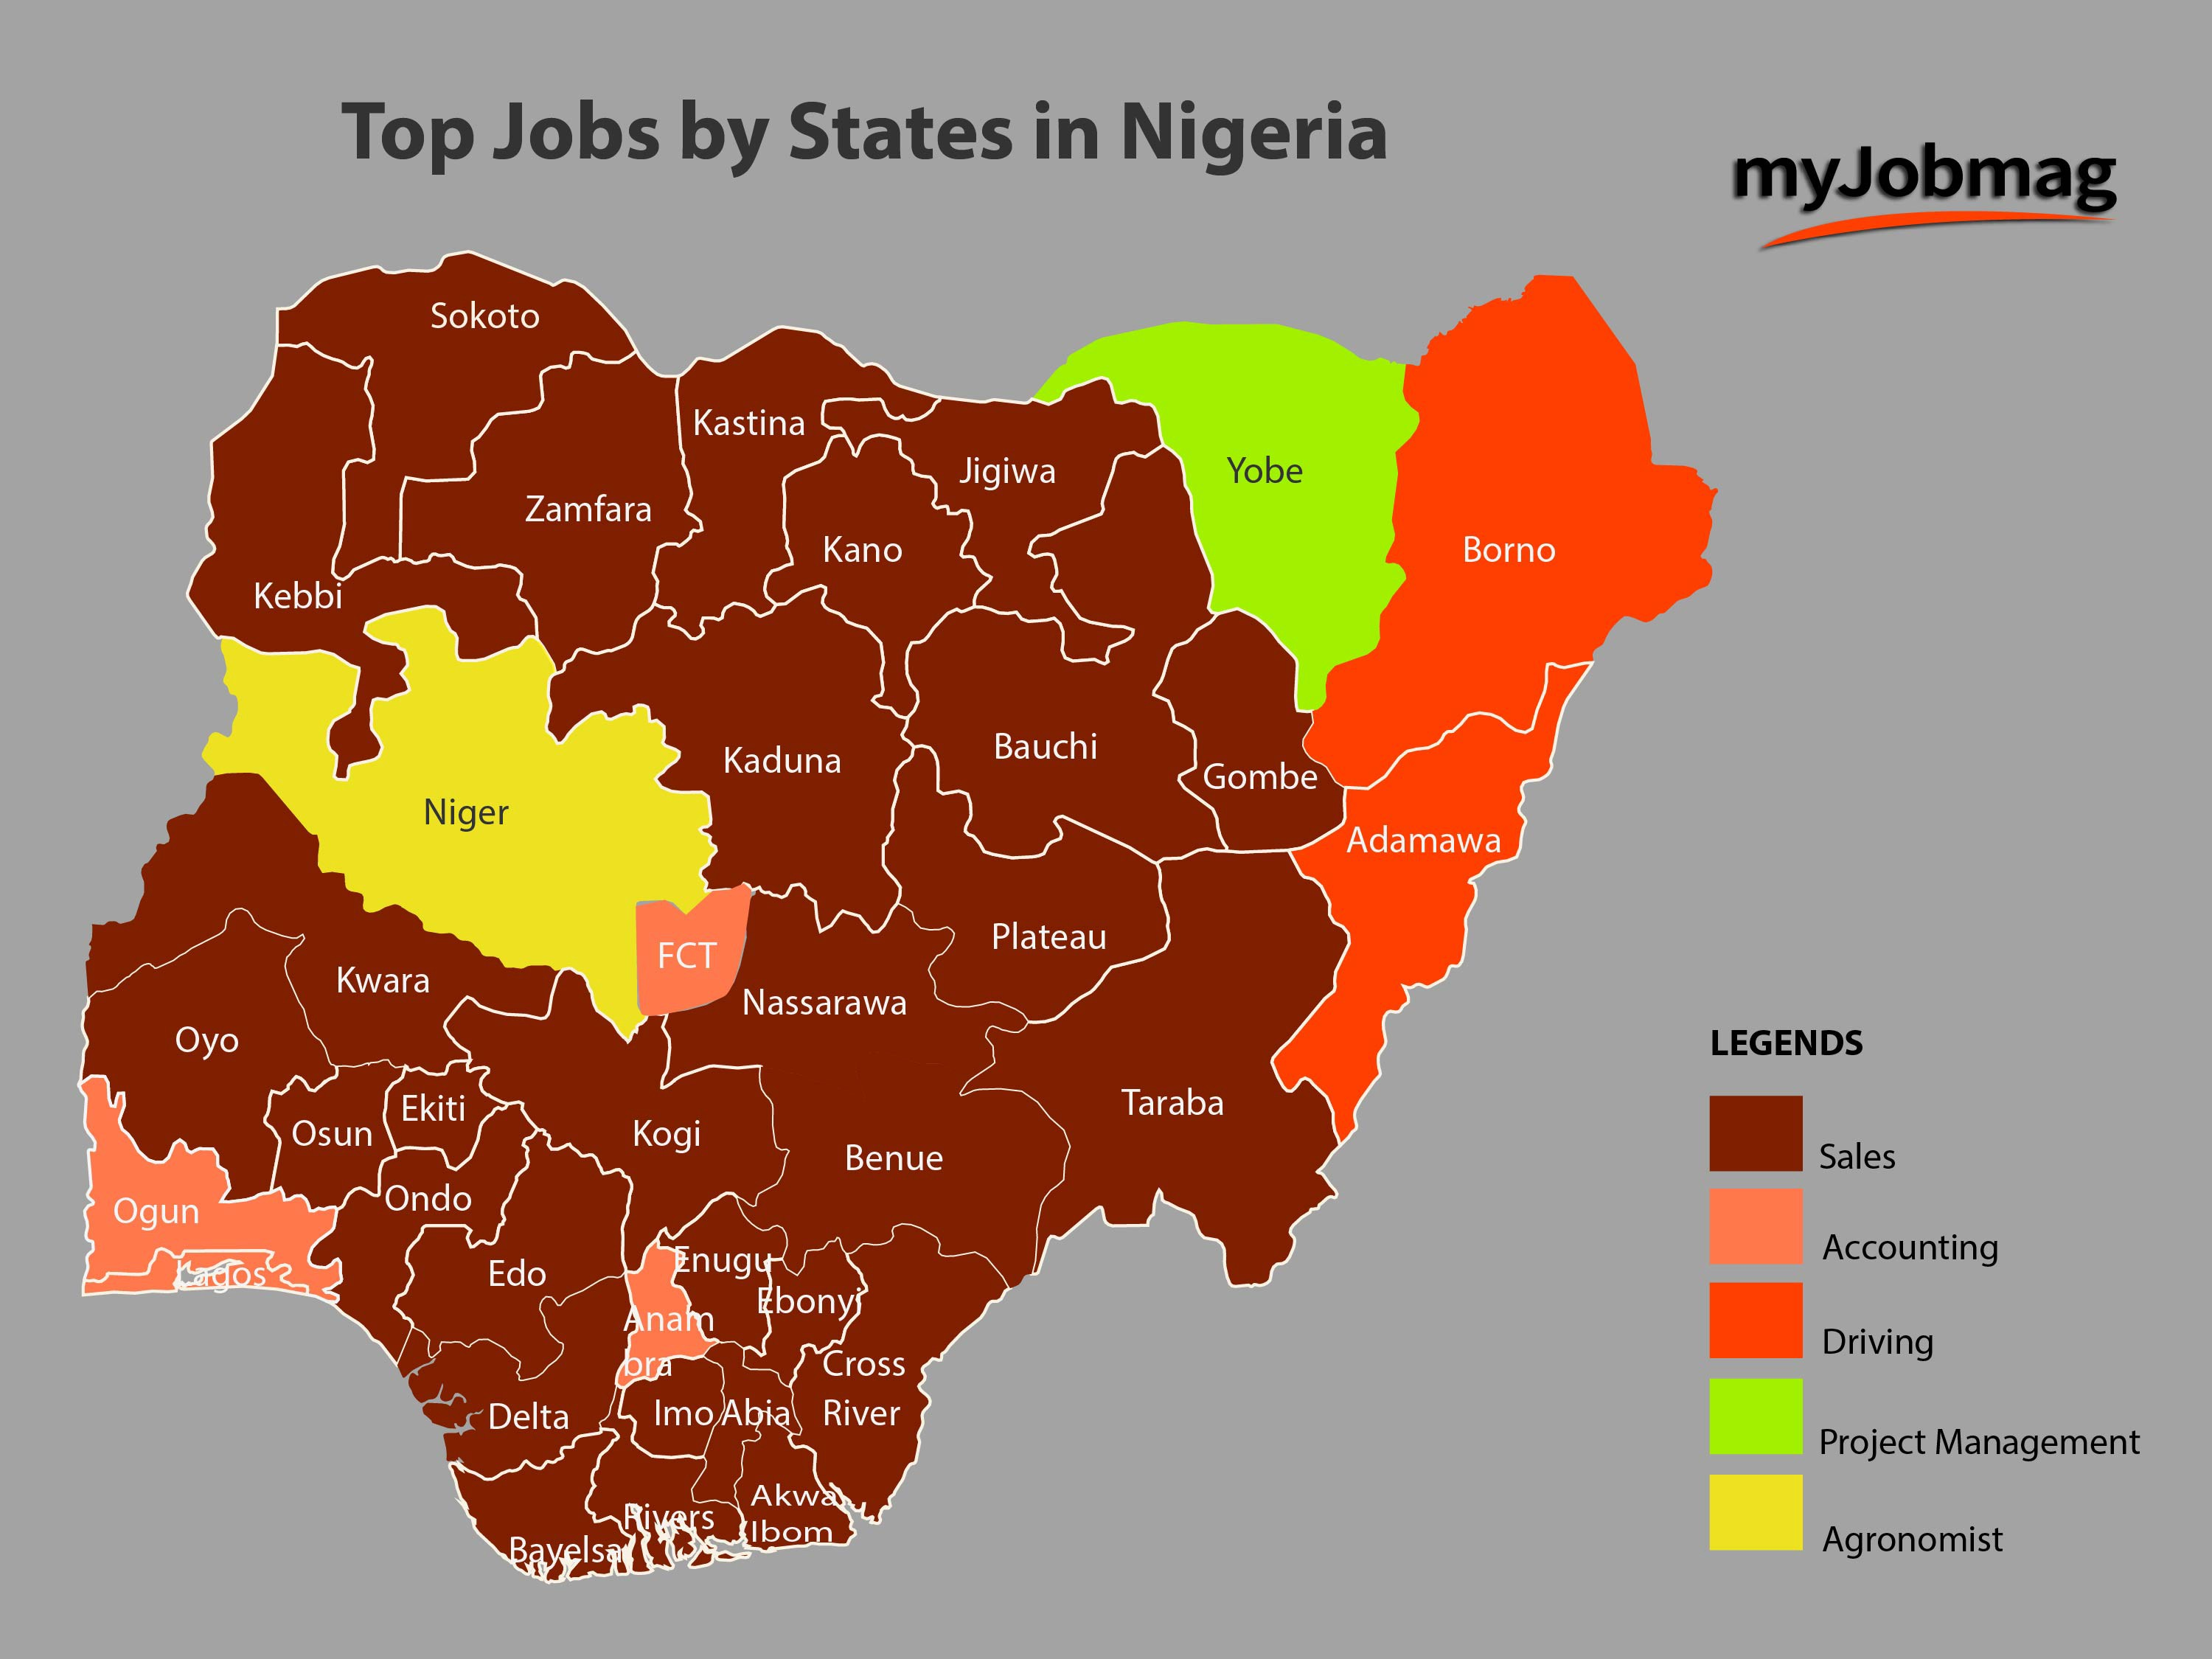 This Map Shows The Most Por Jobs by State in Nigeria Map Of Abia State Nigeria on map of osun state nigeria, adamawa nigeria, map of jigawa state nigeria, map of anambra state of nigeria, map of ogun state nigeria, map of kogi state nigeria, map of benue state nigeria, map of rivers state nigeria, size of nigeria, map of adamawa state, map of borno state nigeria, map of plateau state nigeria, map of yobe state nigeria, map of bayelsa state nigeria, delta state nigeria, 36 states in nigeria, map of niger state nigeria, map of ebonyi state nigeria, map of ekiti state nigeria, map of nigerian states,